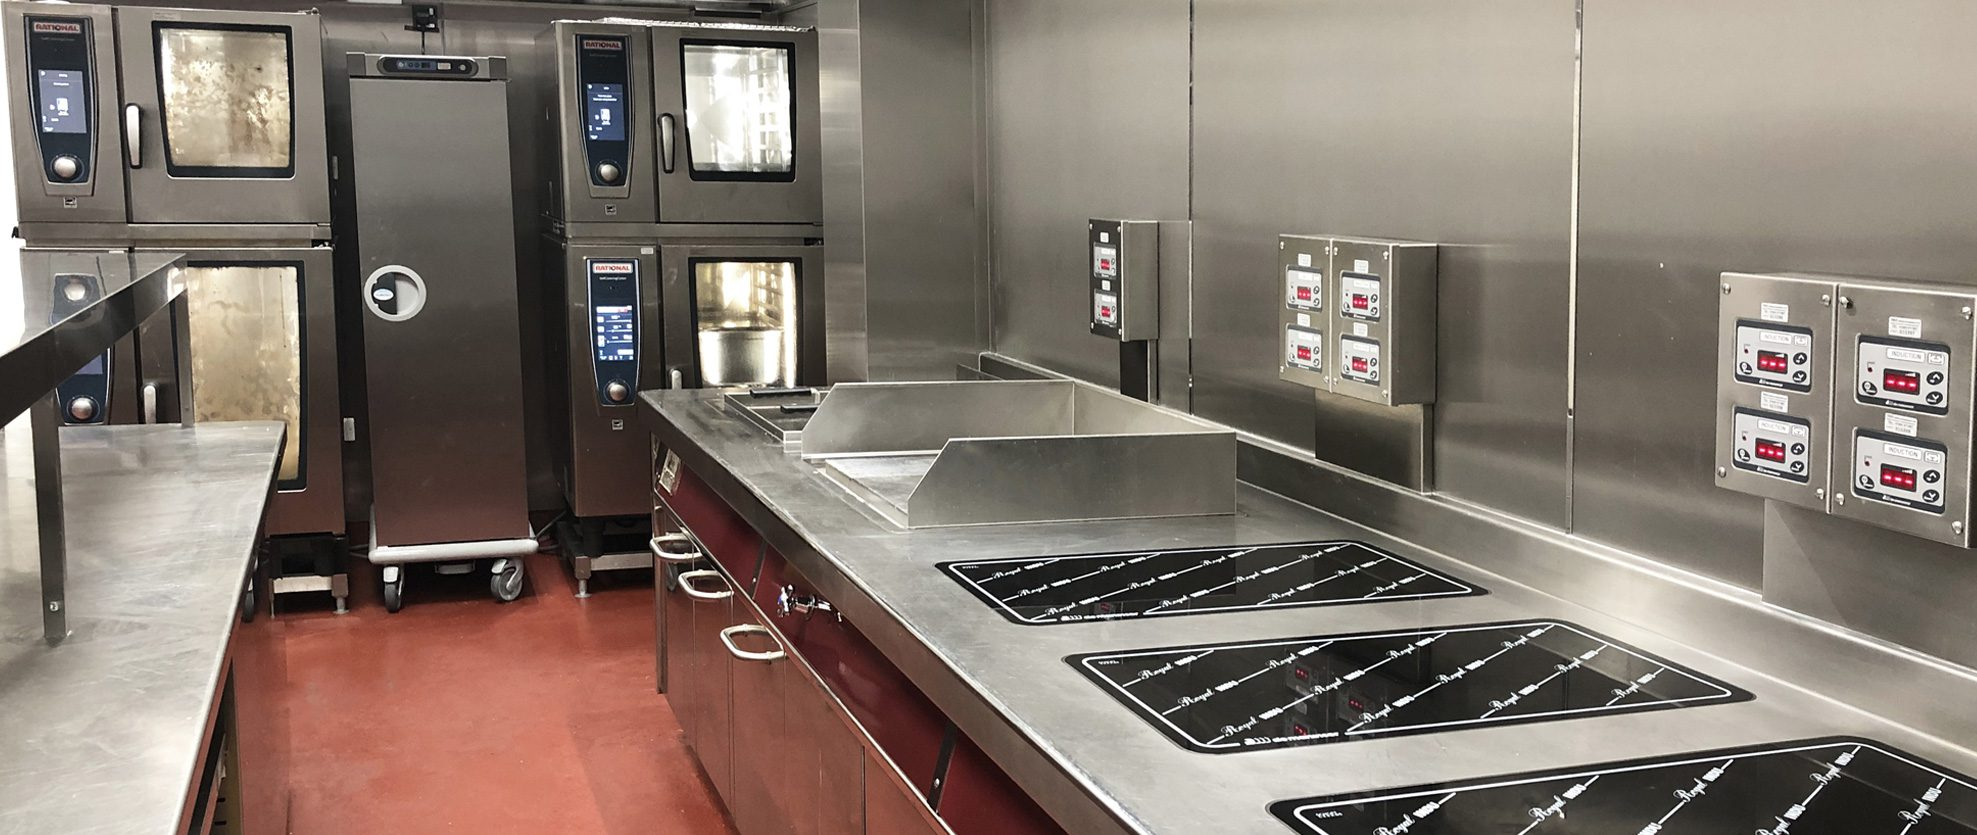 Cooking Appliance Start-Up Recommissioning Guide